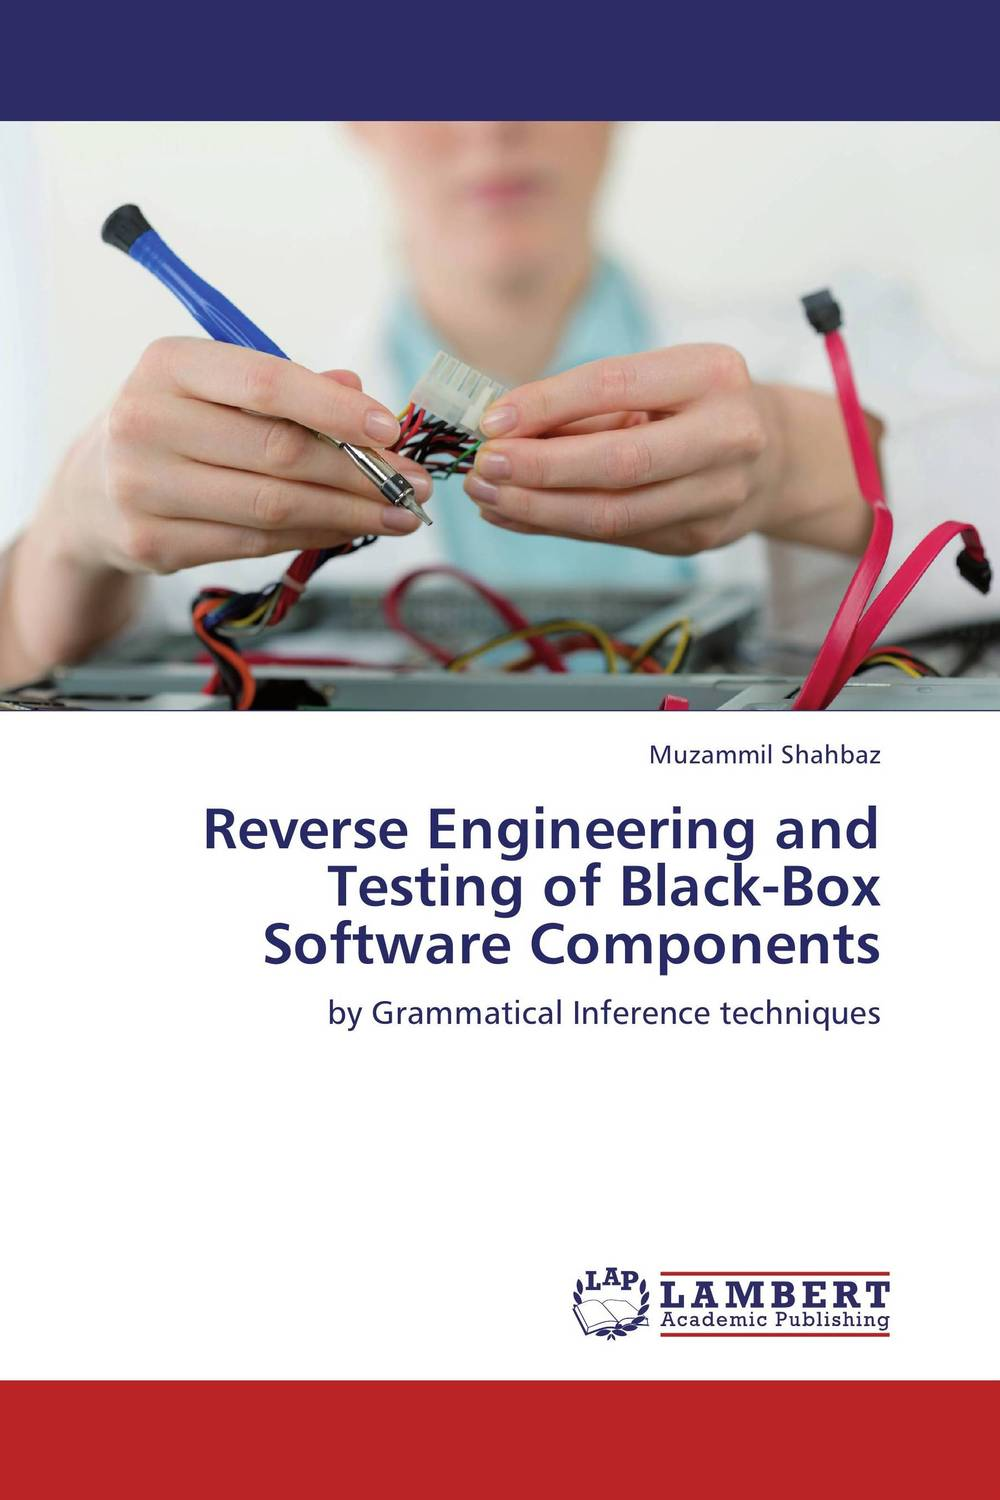 Reverse Engineering and Testing of Black-Box Software Components светильник 704634 monile osgona 1045034